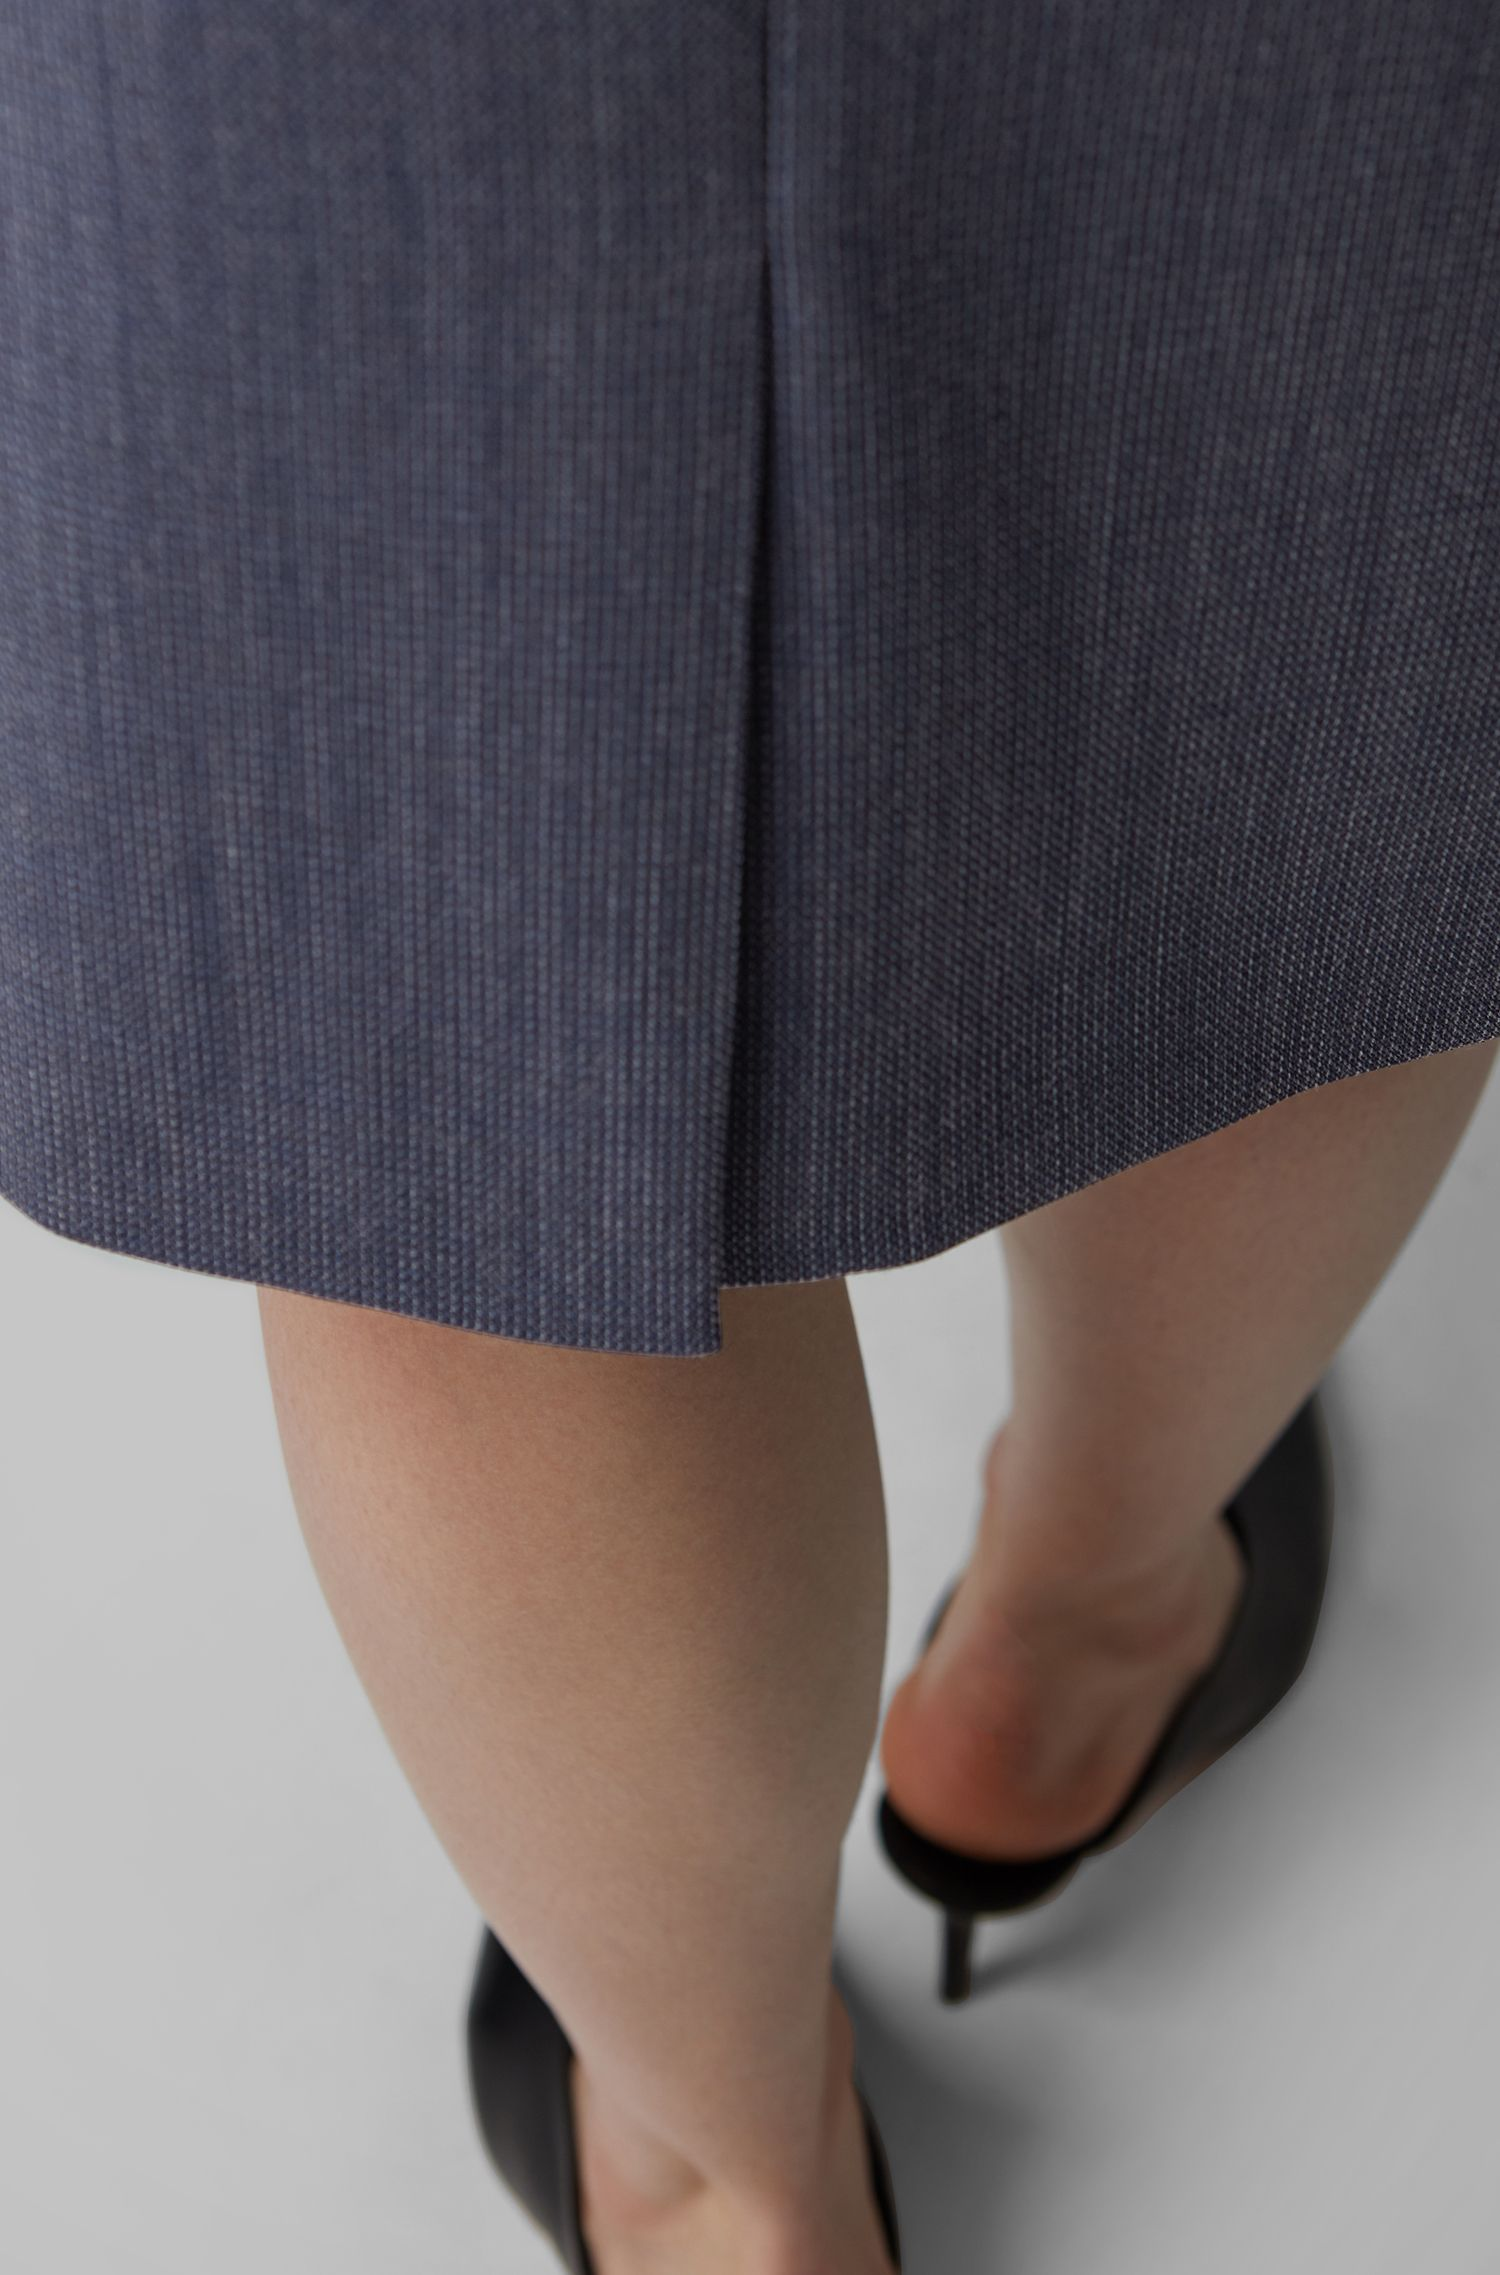 Pencil skirt in patterned virgin wool with natural stretch, Patterned